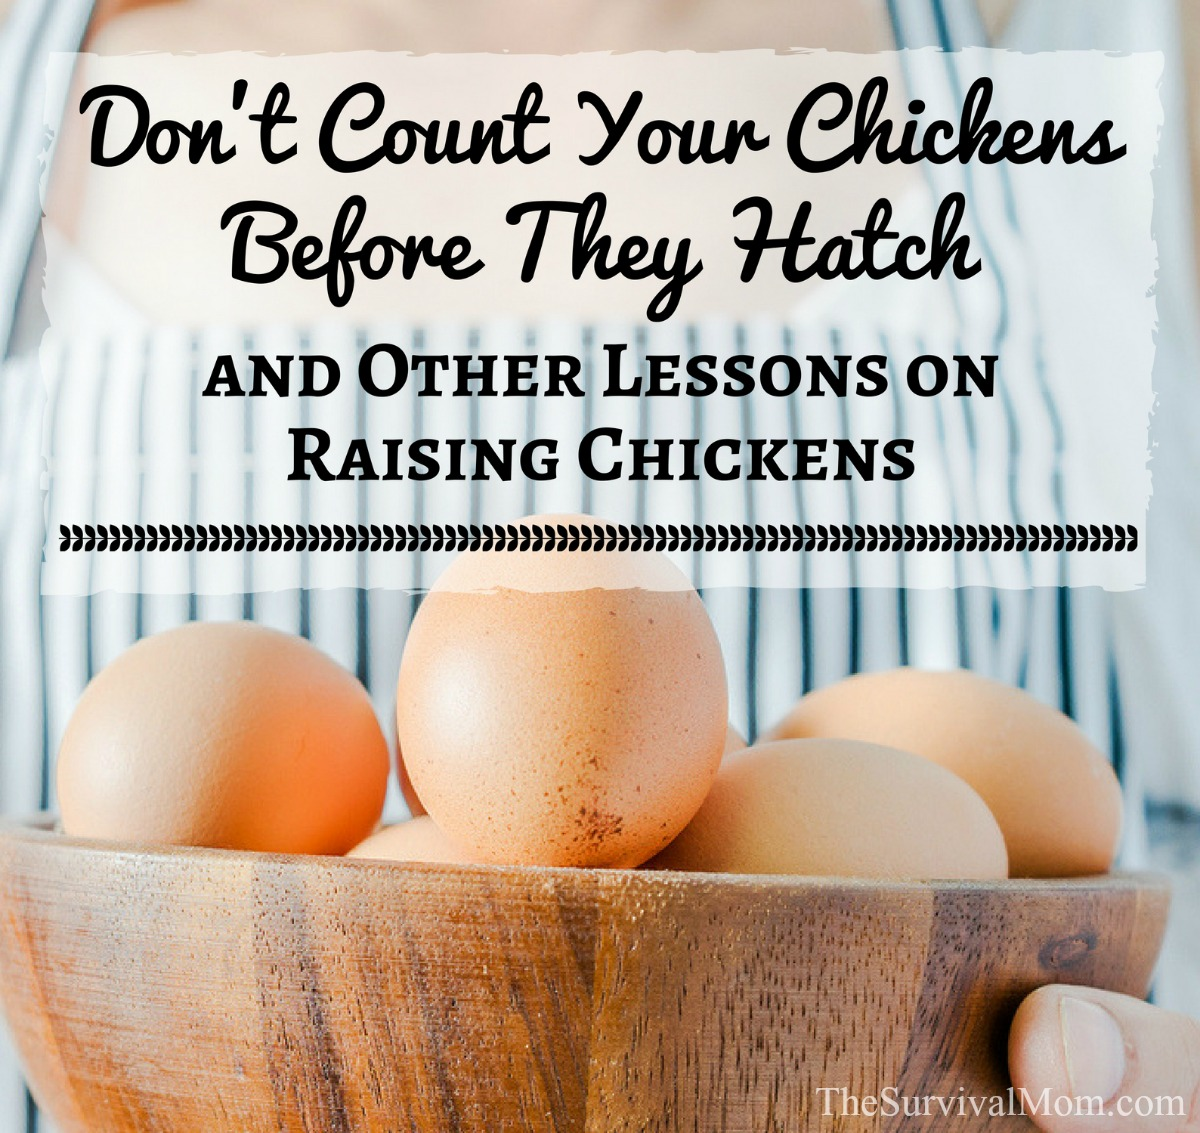 Don't Count Your Chickens Before They Hatch and other lessons on raising chickens via The Survival Mom